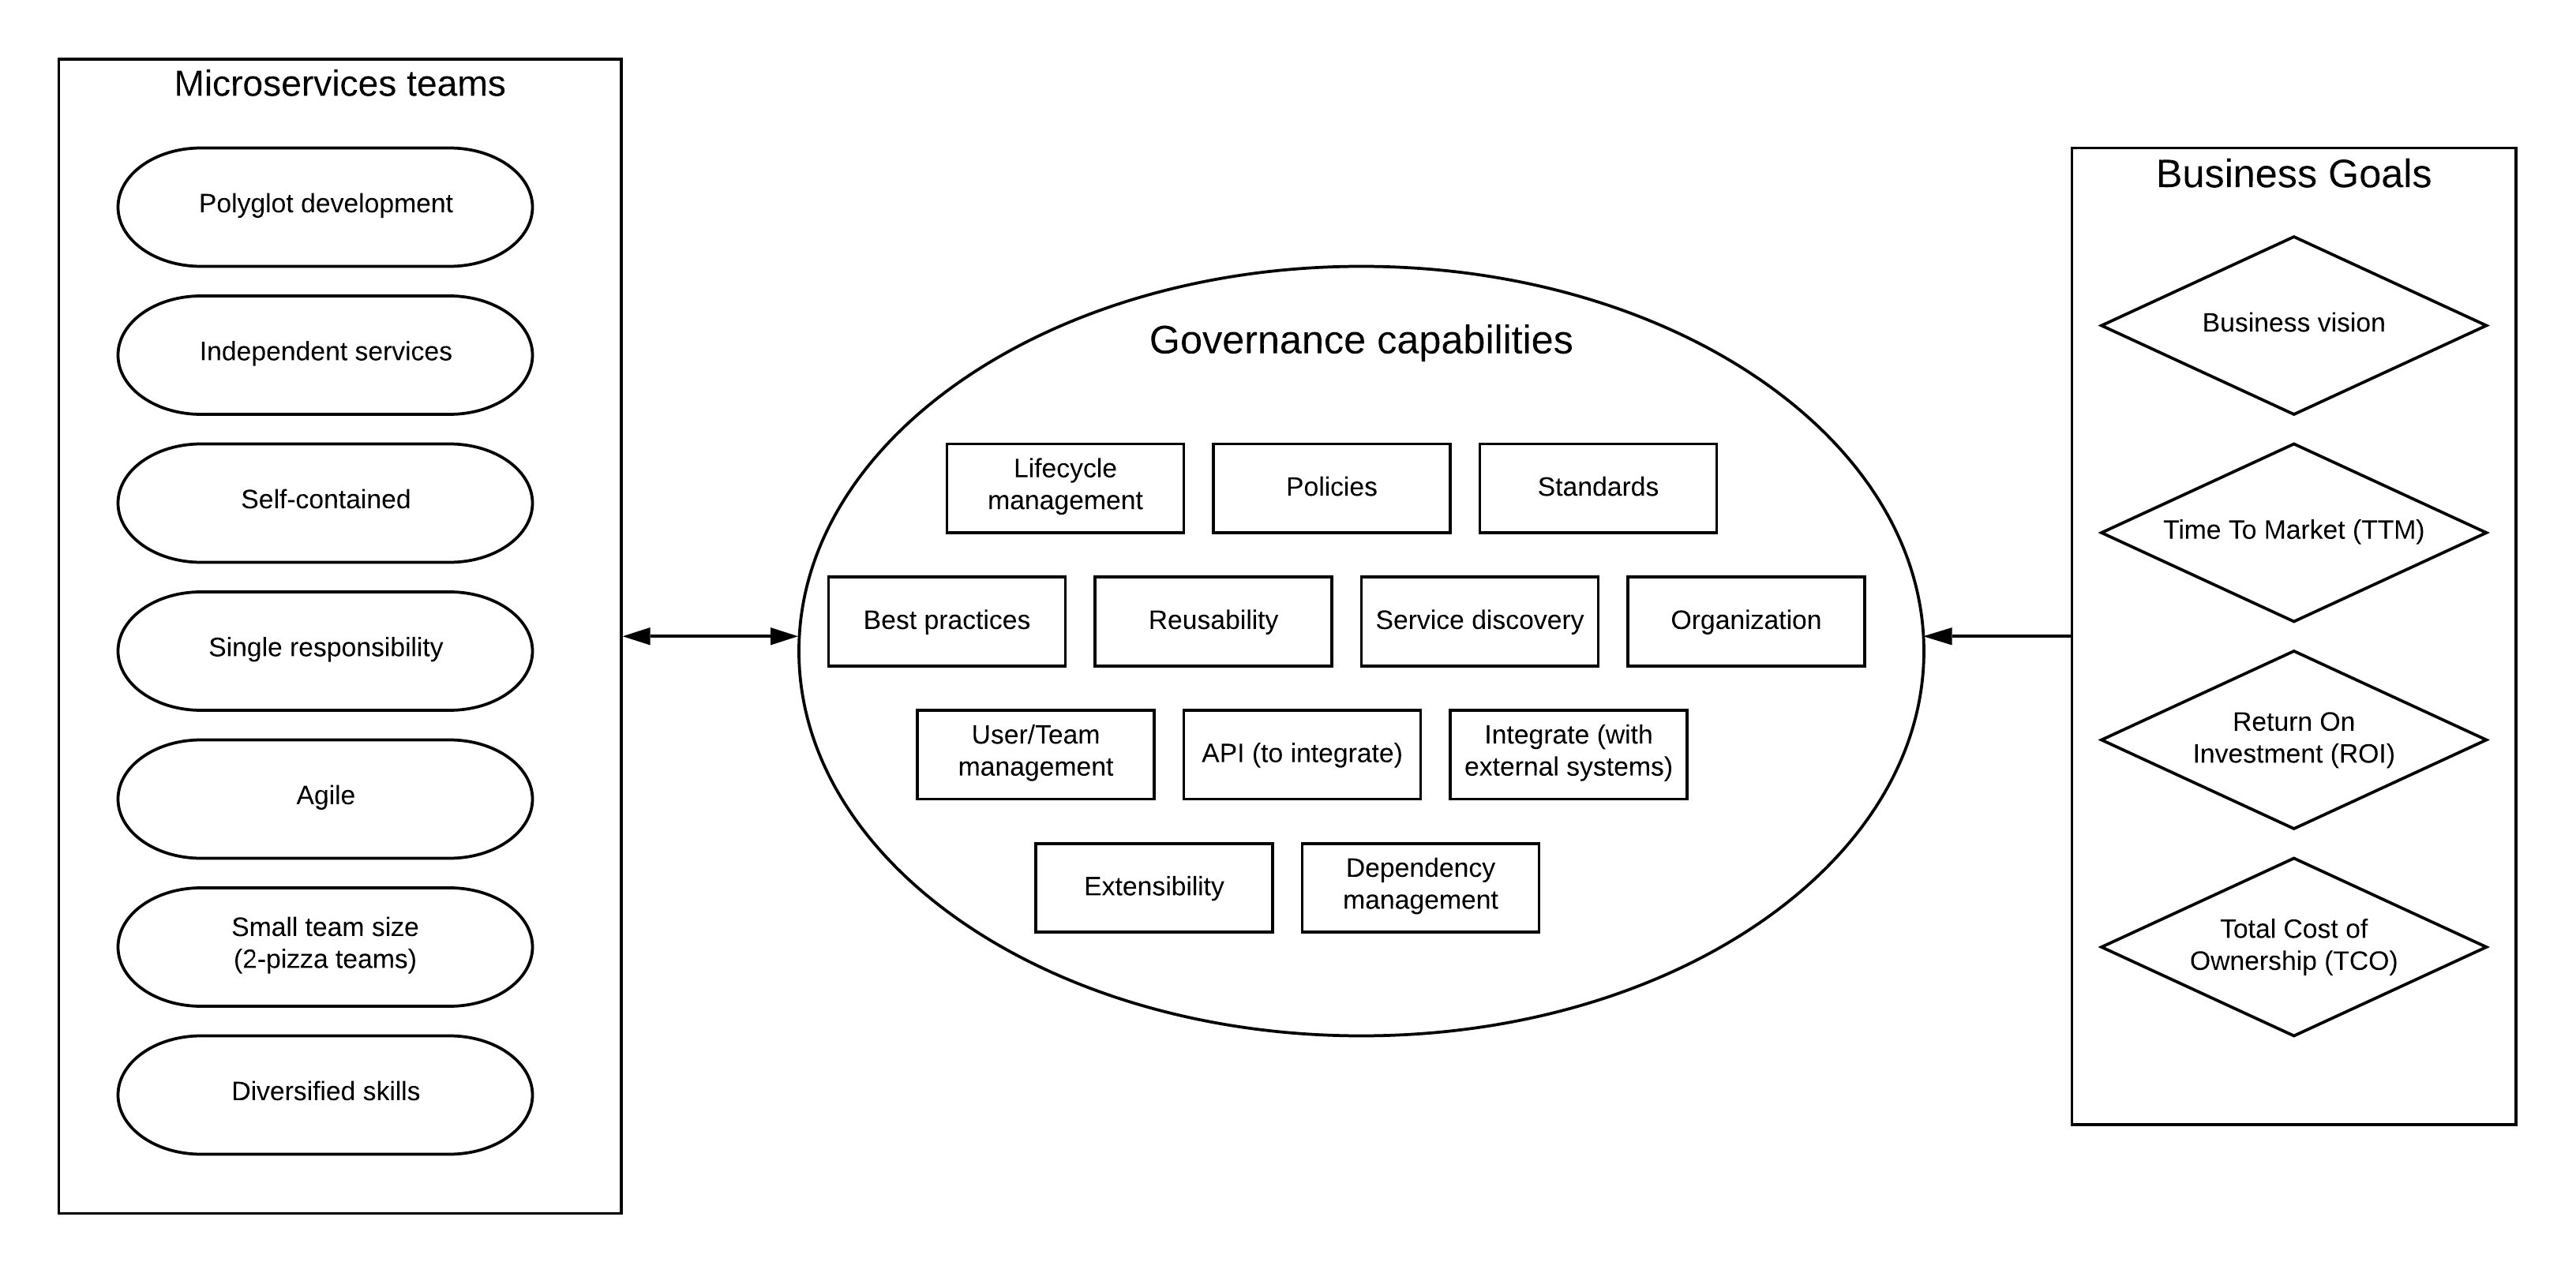 Figure: microservices, governance, and business goals